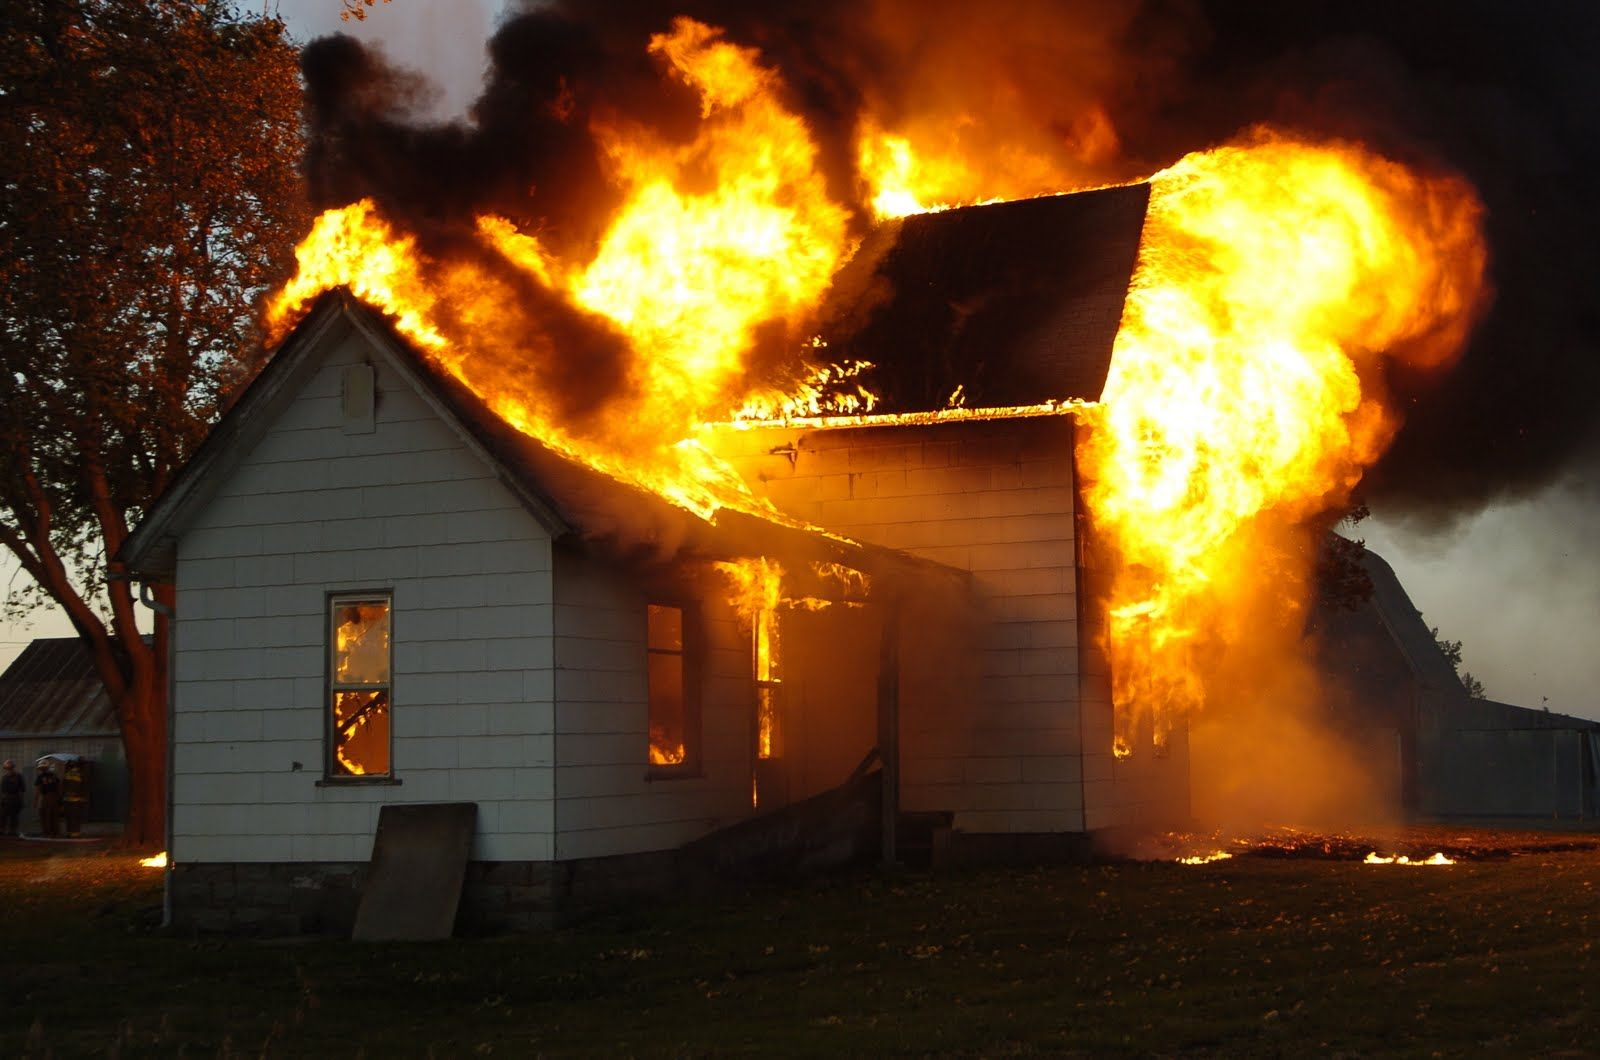 Man Runs Back Into Burning House To Save X-Box